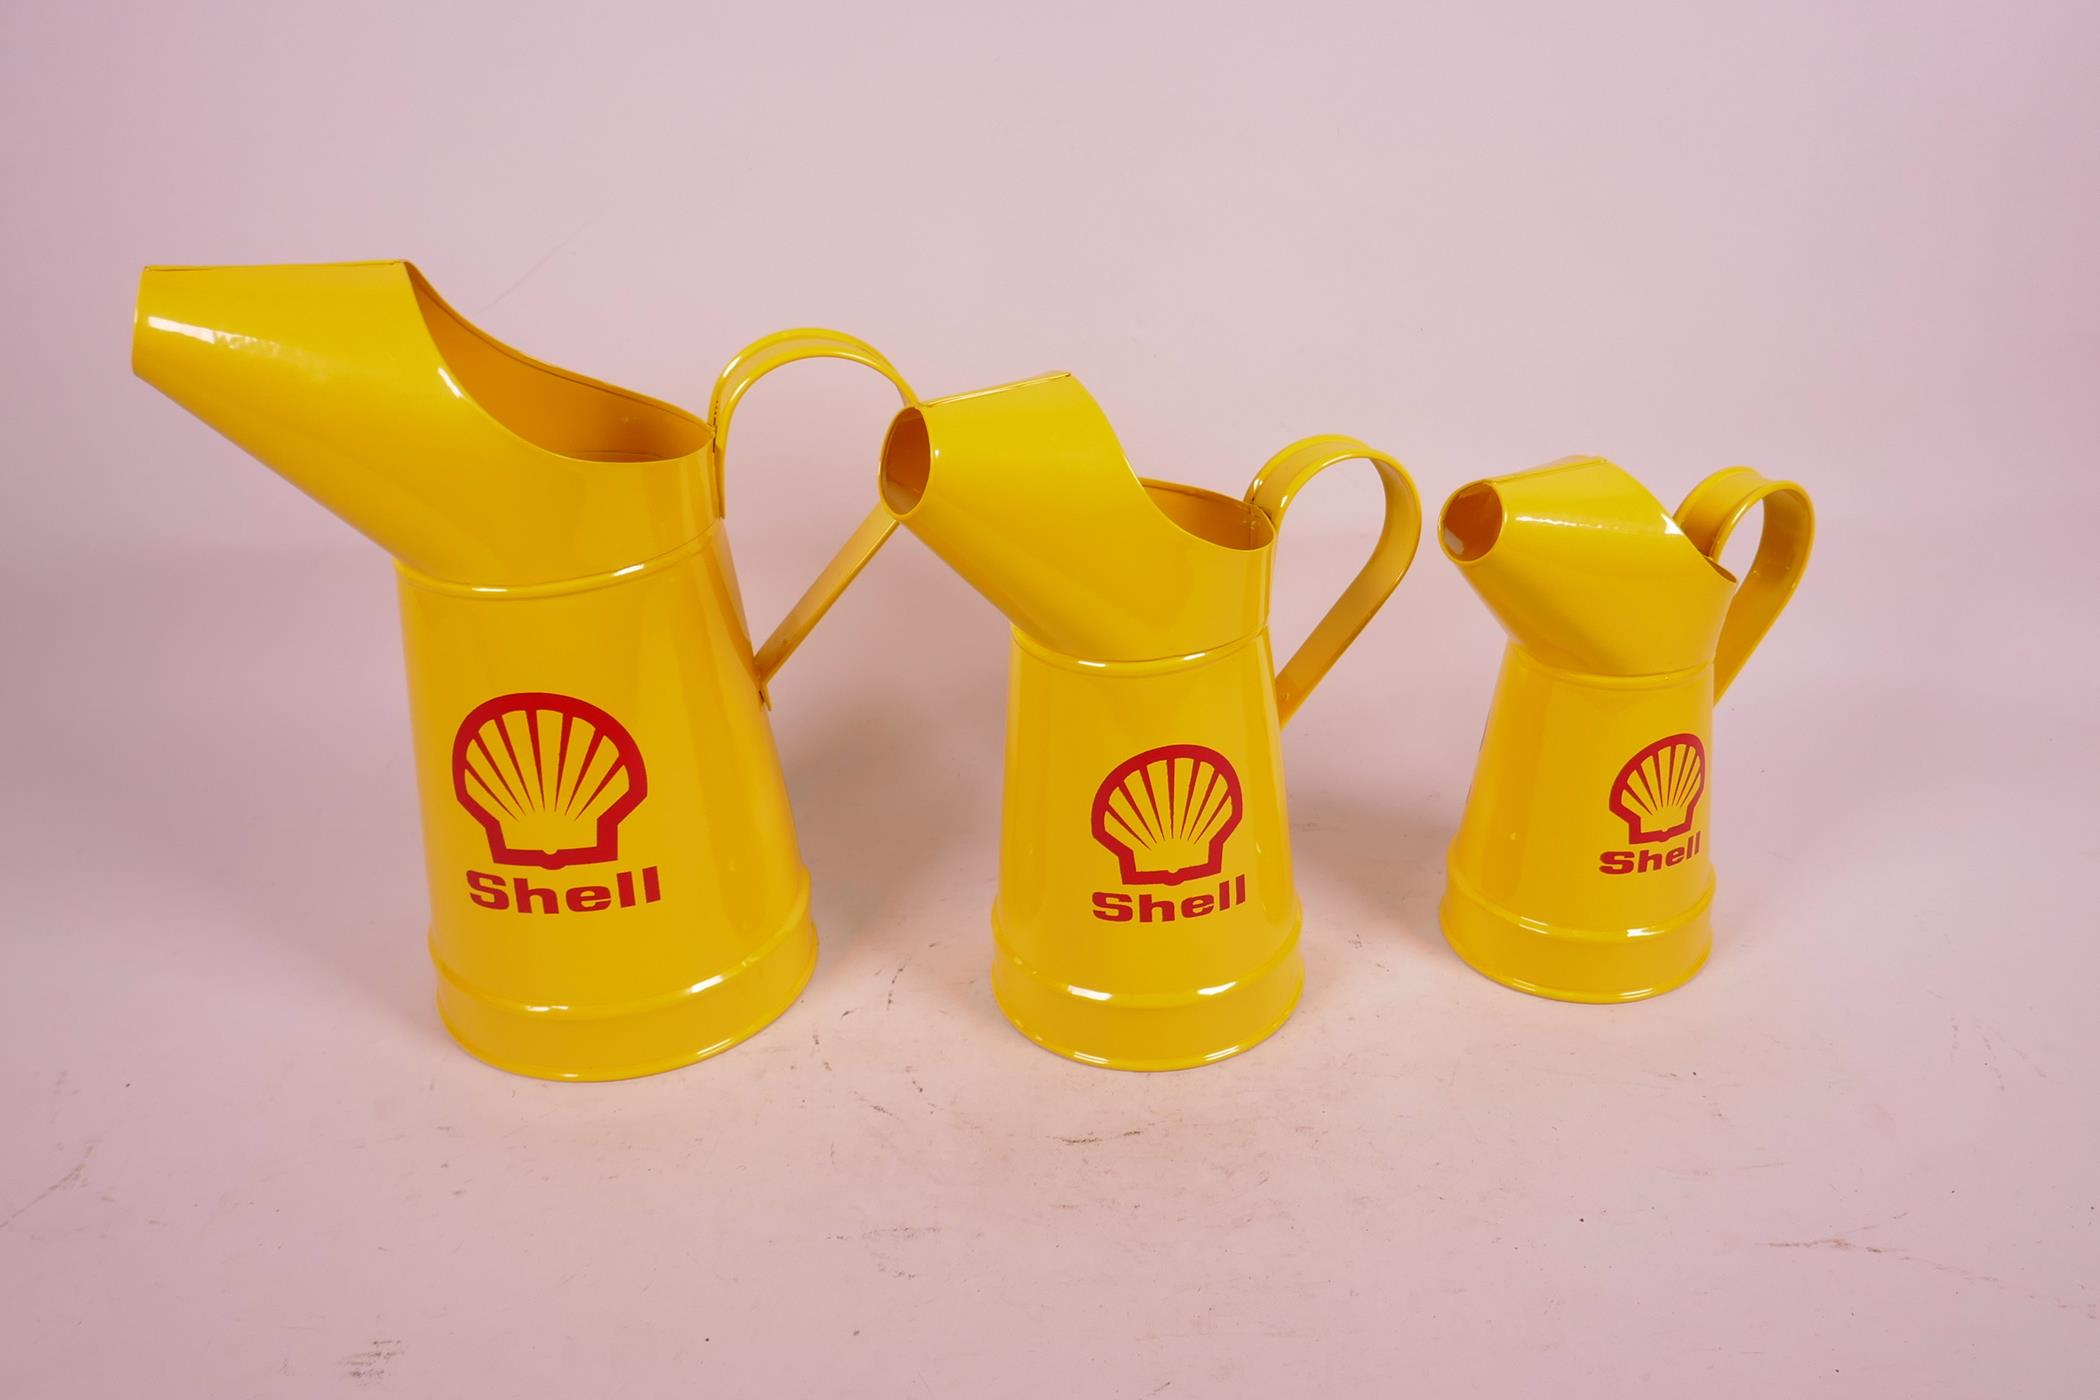 """Lot 2 - A set of three replica oil jugs decorated with the Shell logo, largest 10"""" high"""